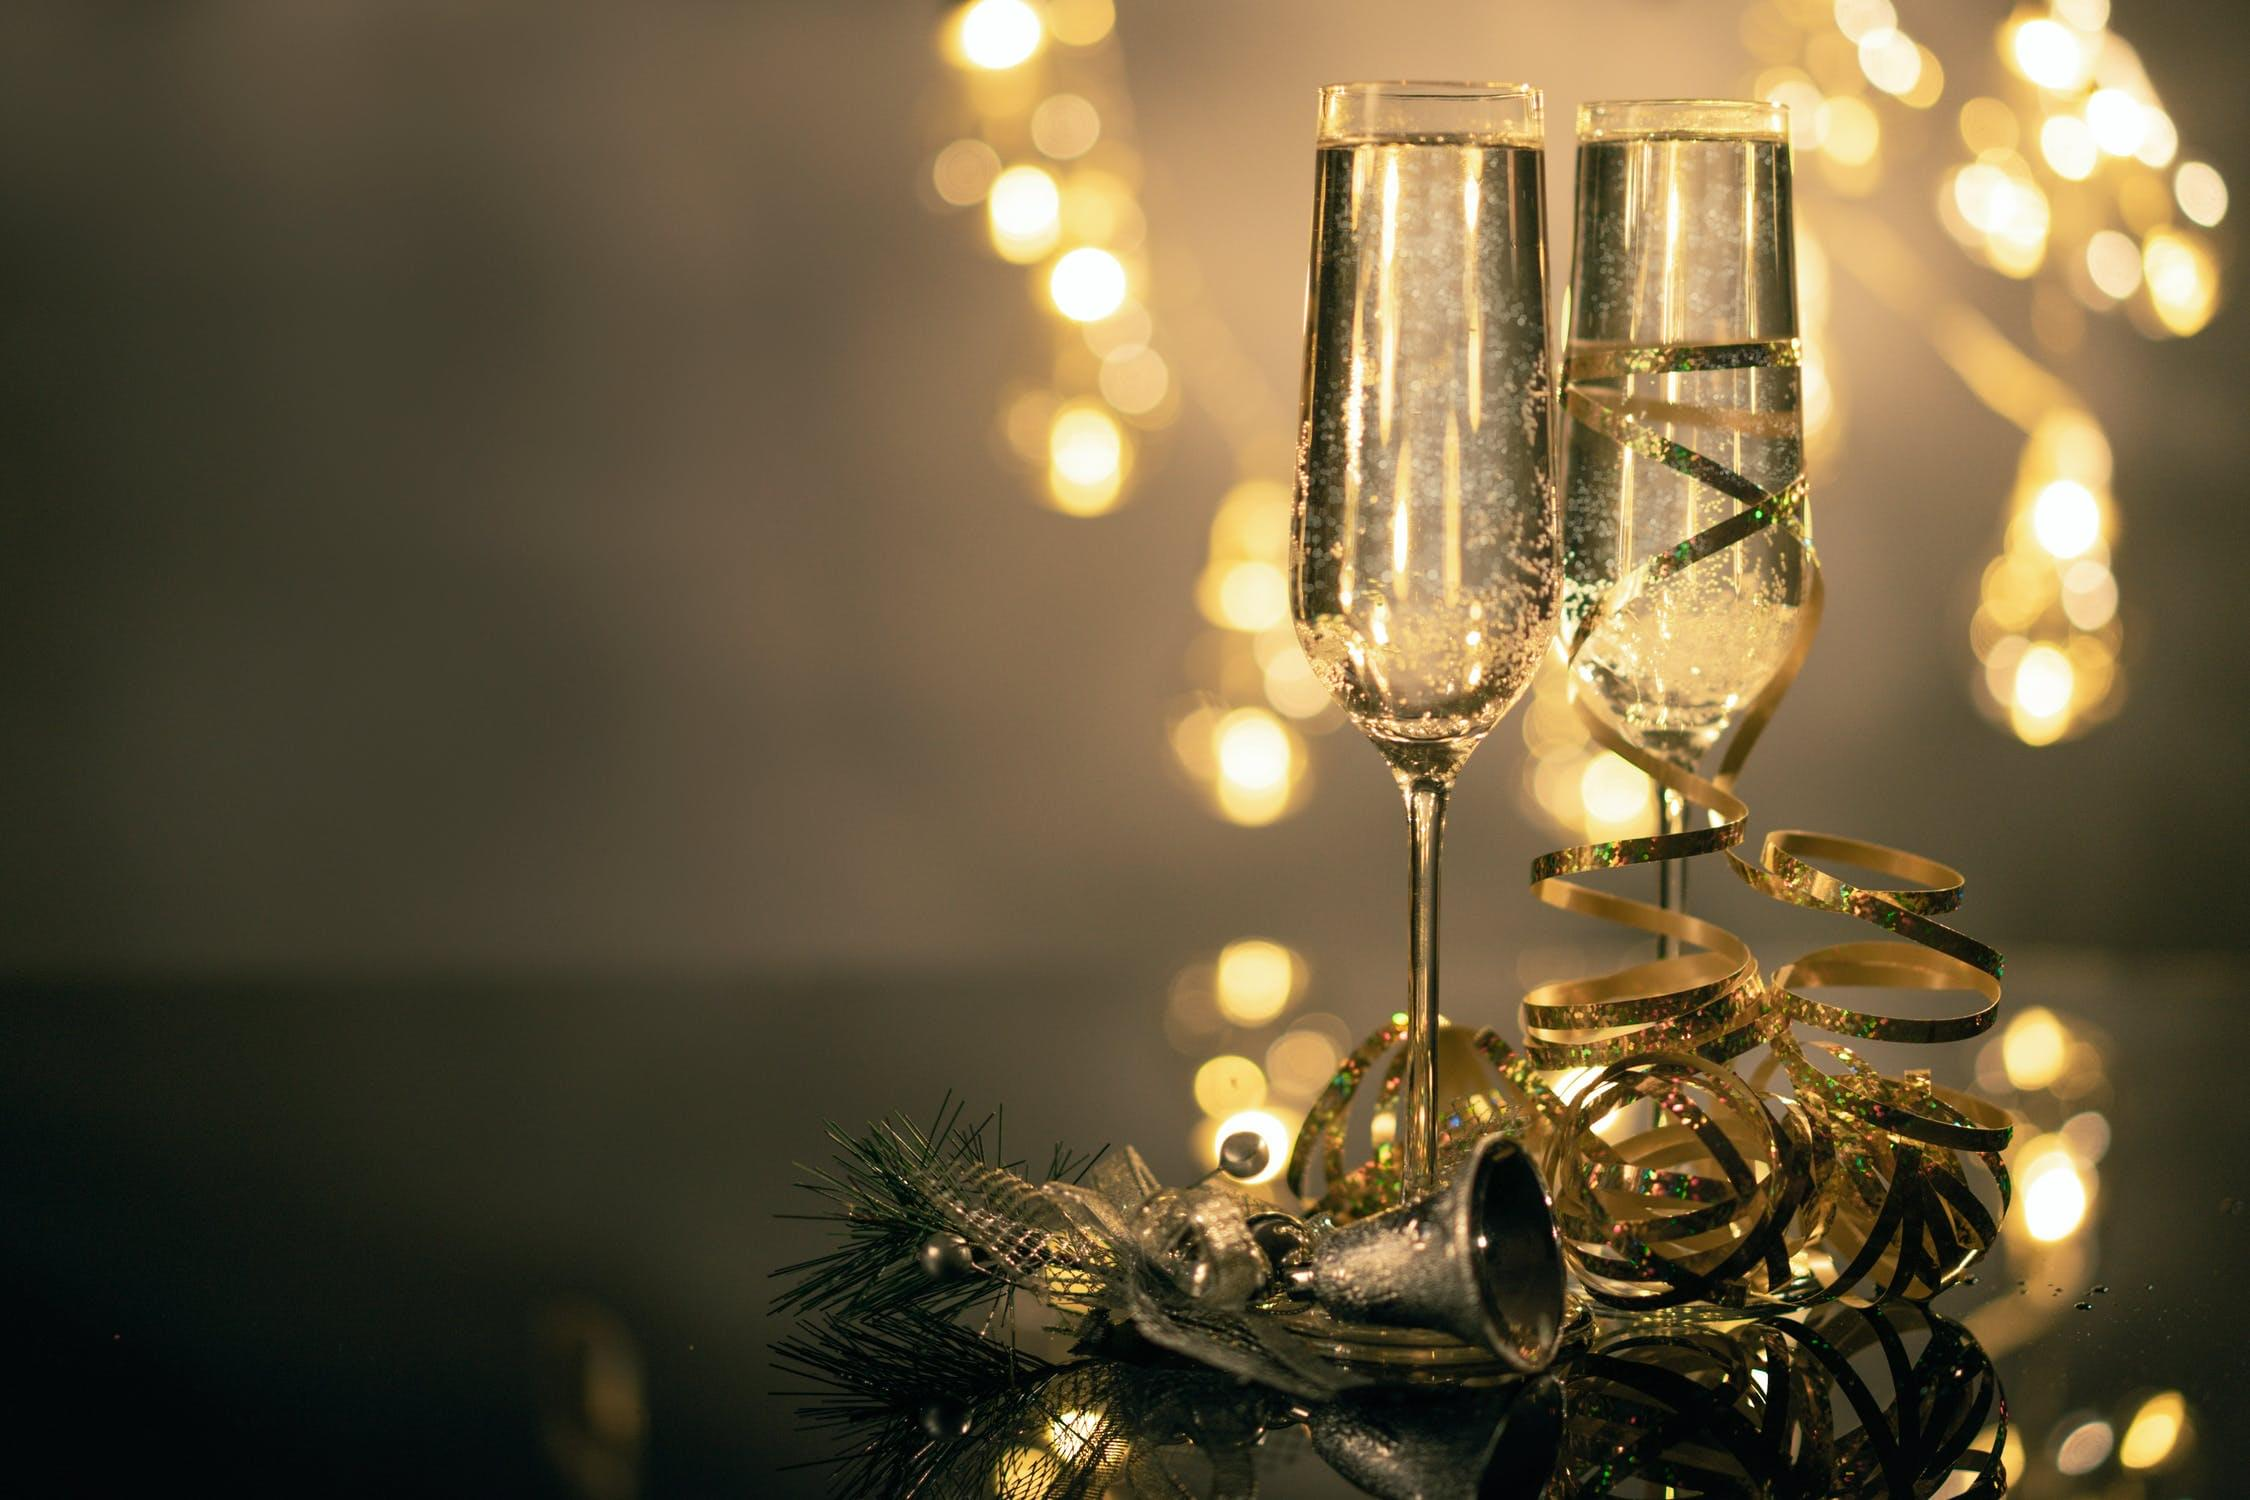 Aldi is rolling out a new year calendar full of mini bottles of sparkling wine